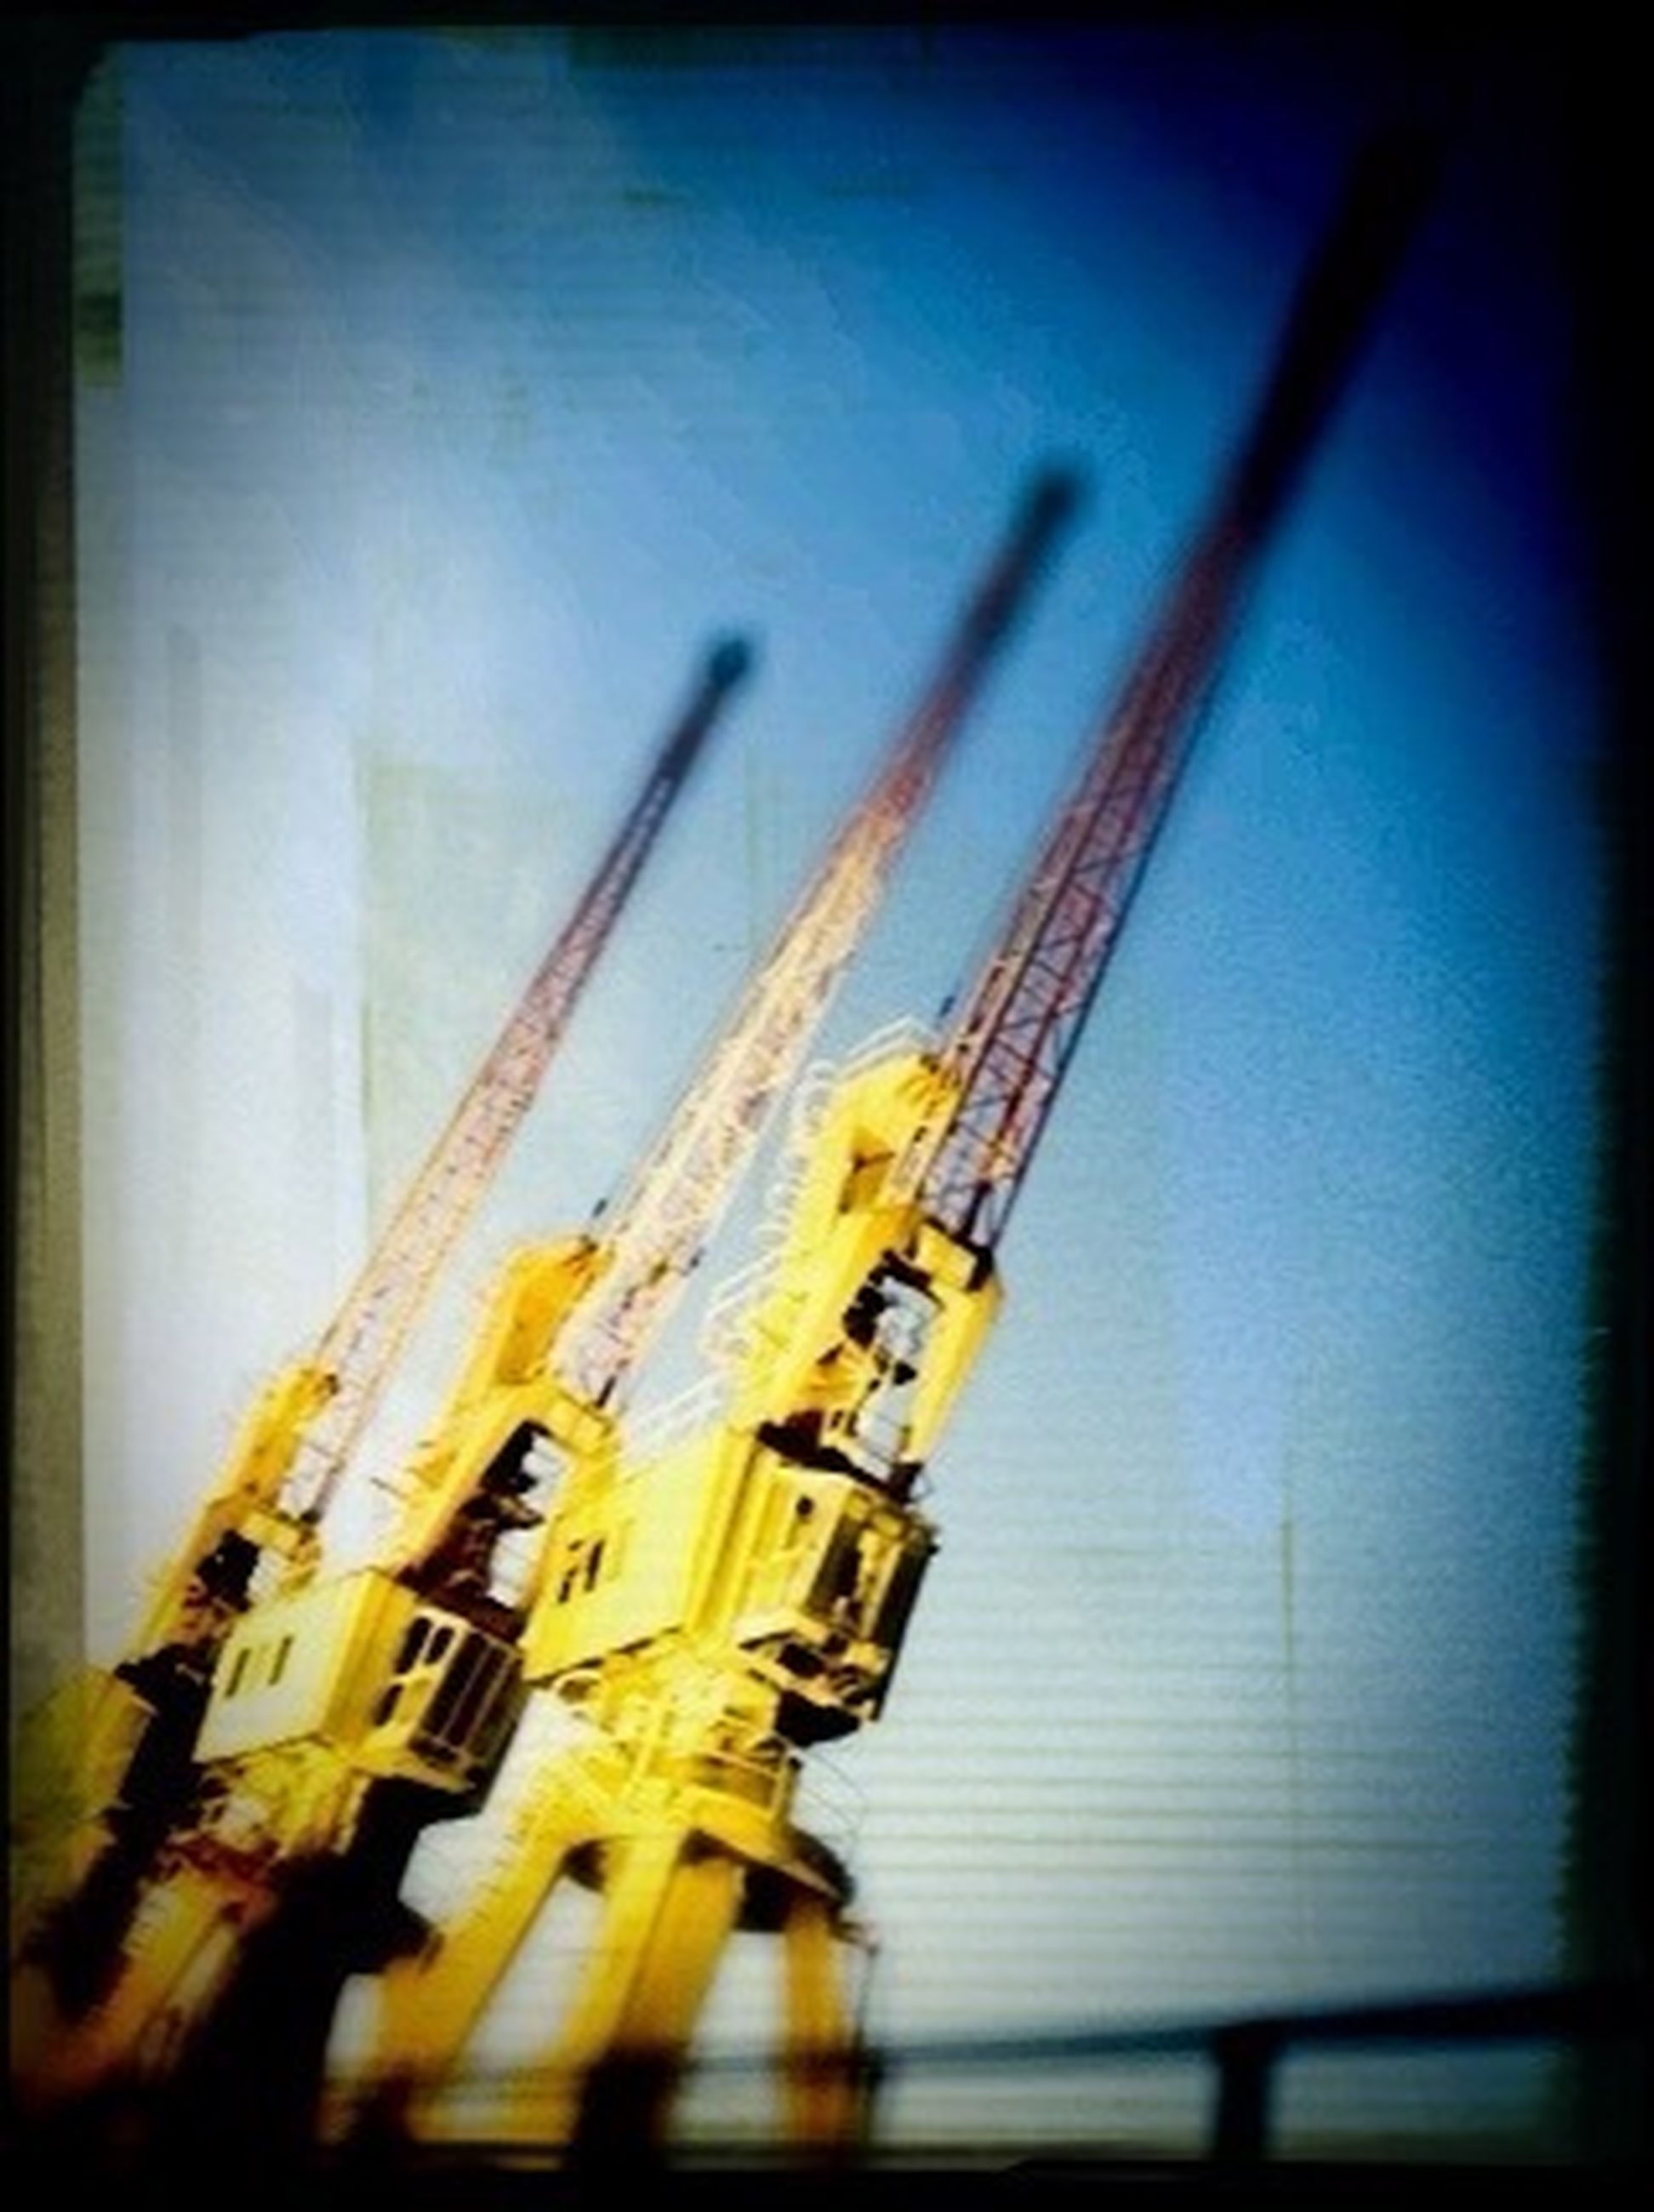 transfer print, auto post production filter, architecture, building exterior, built structure, selective focus, low angle view, no people, outdoors, sky, day, vignette, tilt, building, crane - construction machinery, city, focus on foreground, close-up, metal